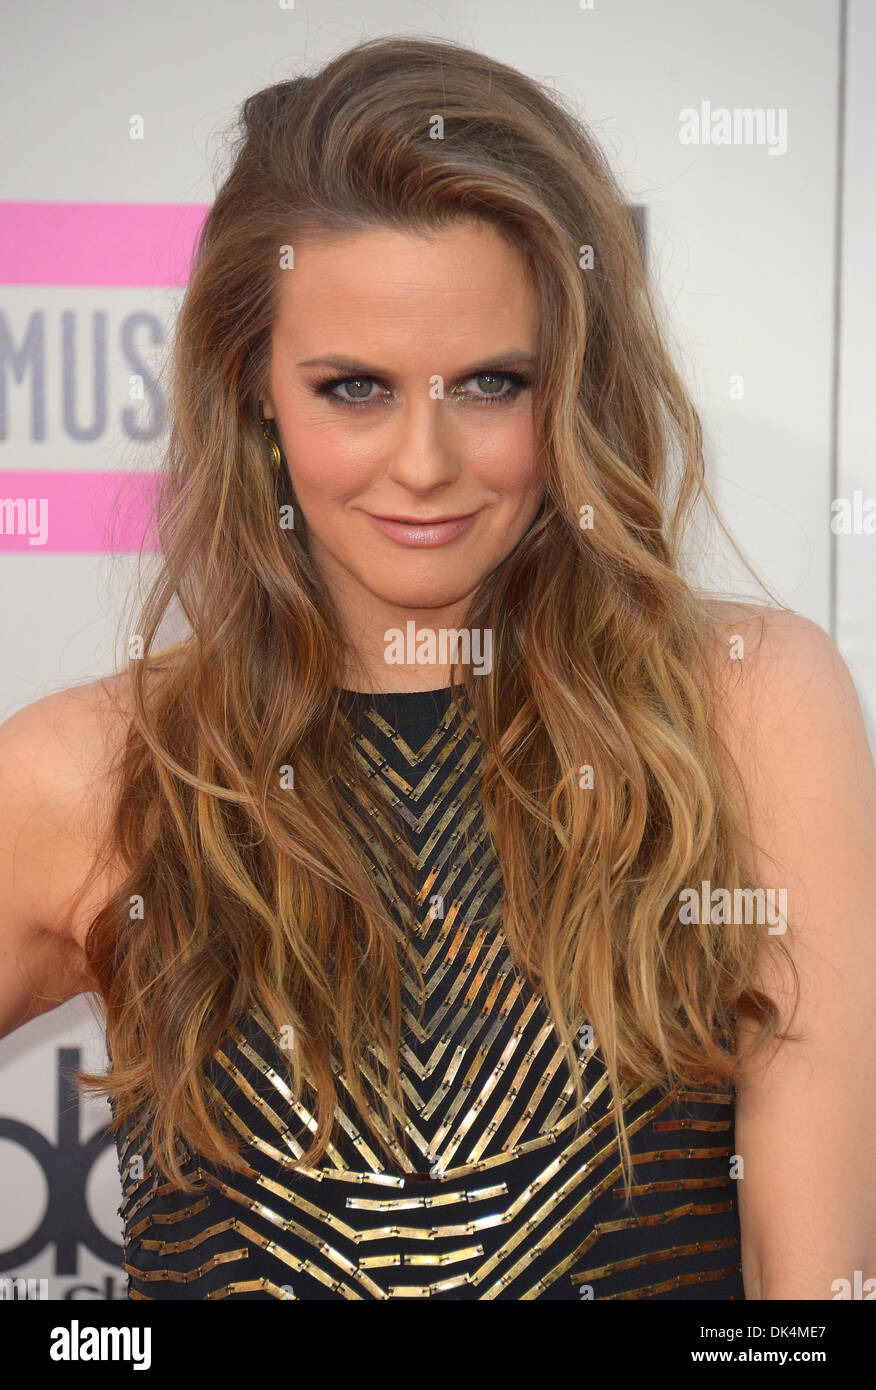 Alicia Silverstone arrives at the American Music Awards, Los